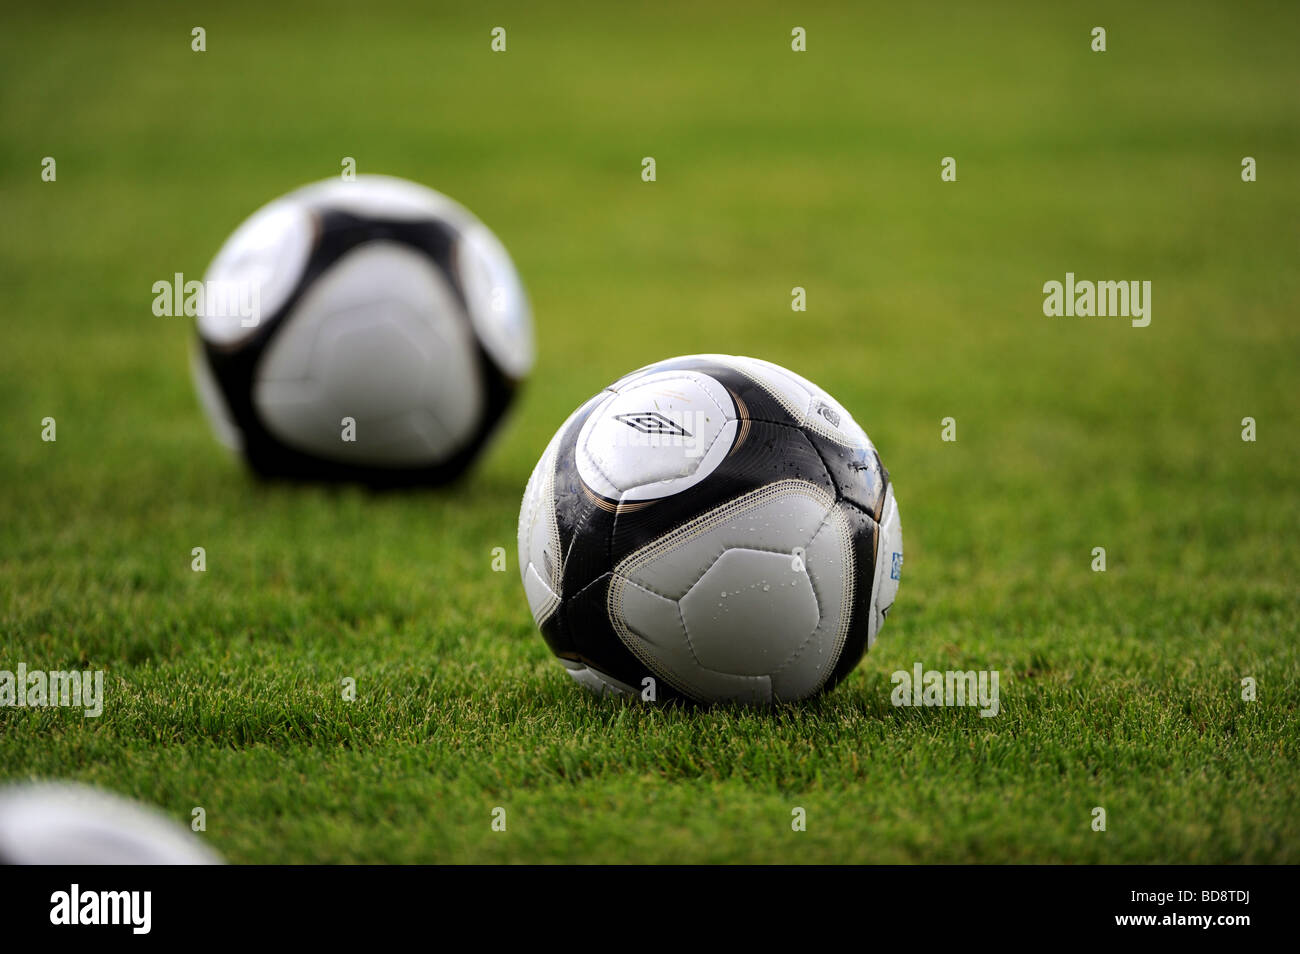 Footballs High Resolution Stock Photography And Images Alamy